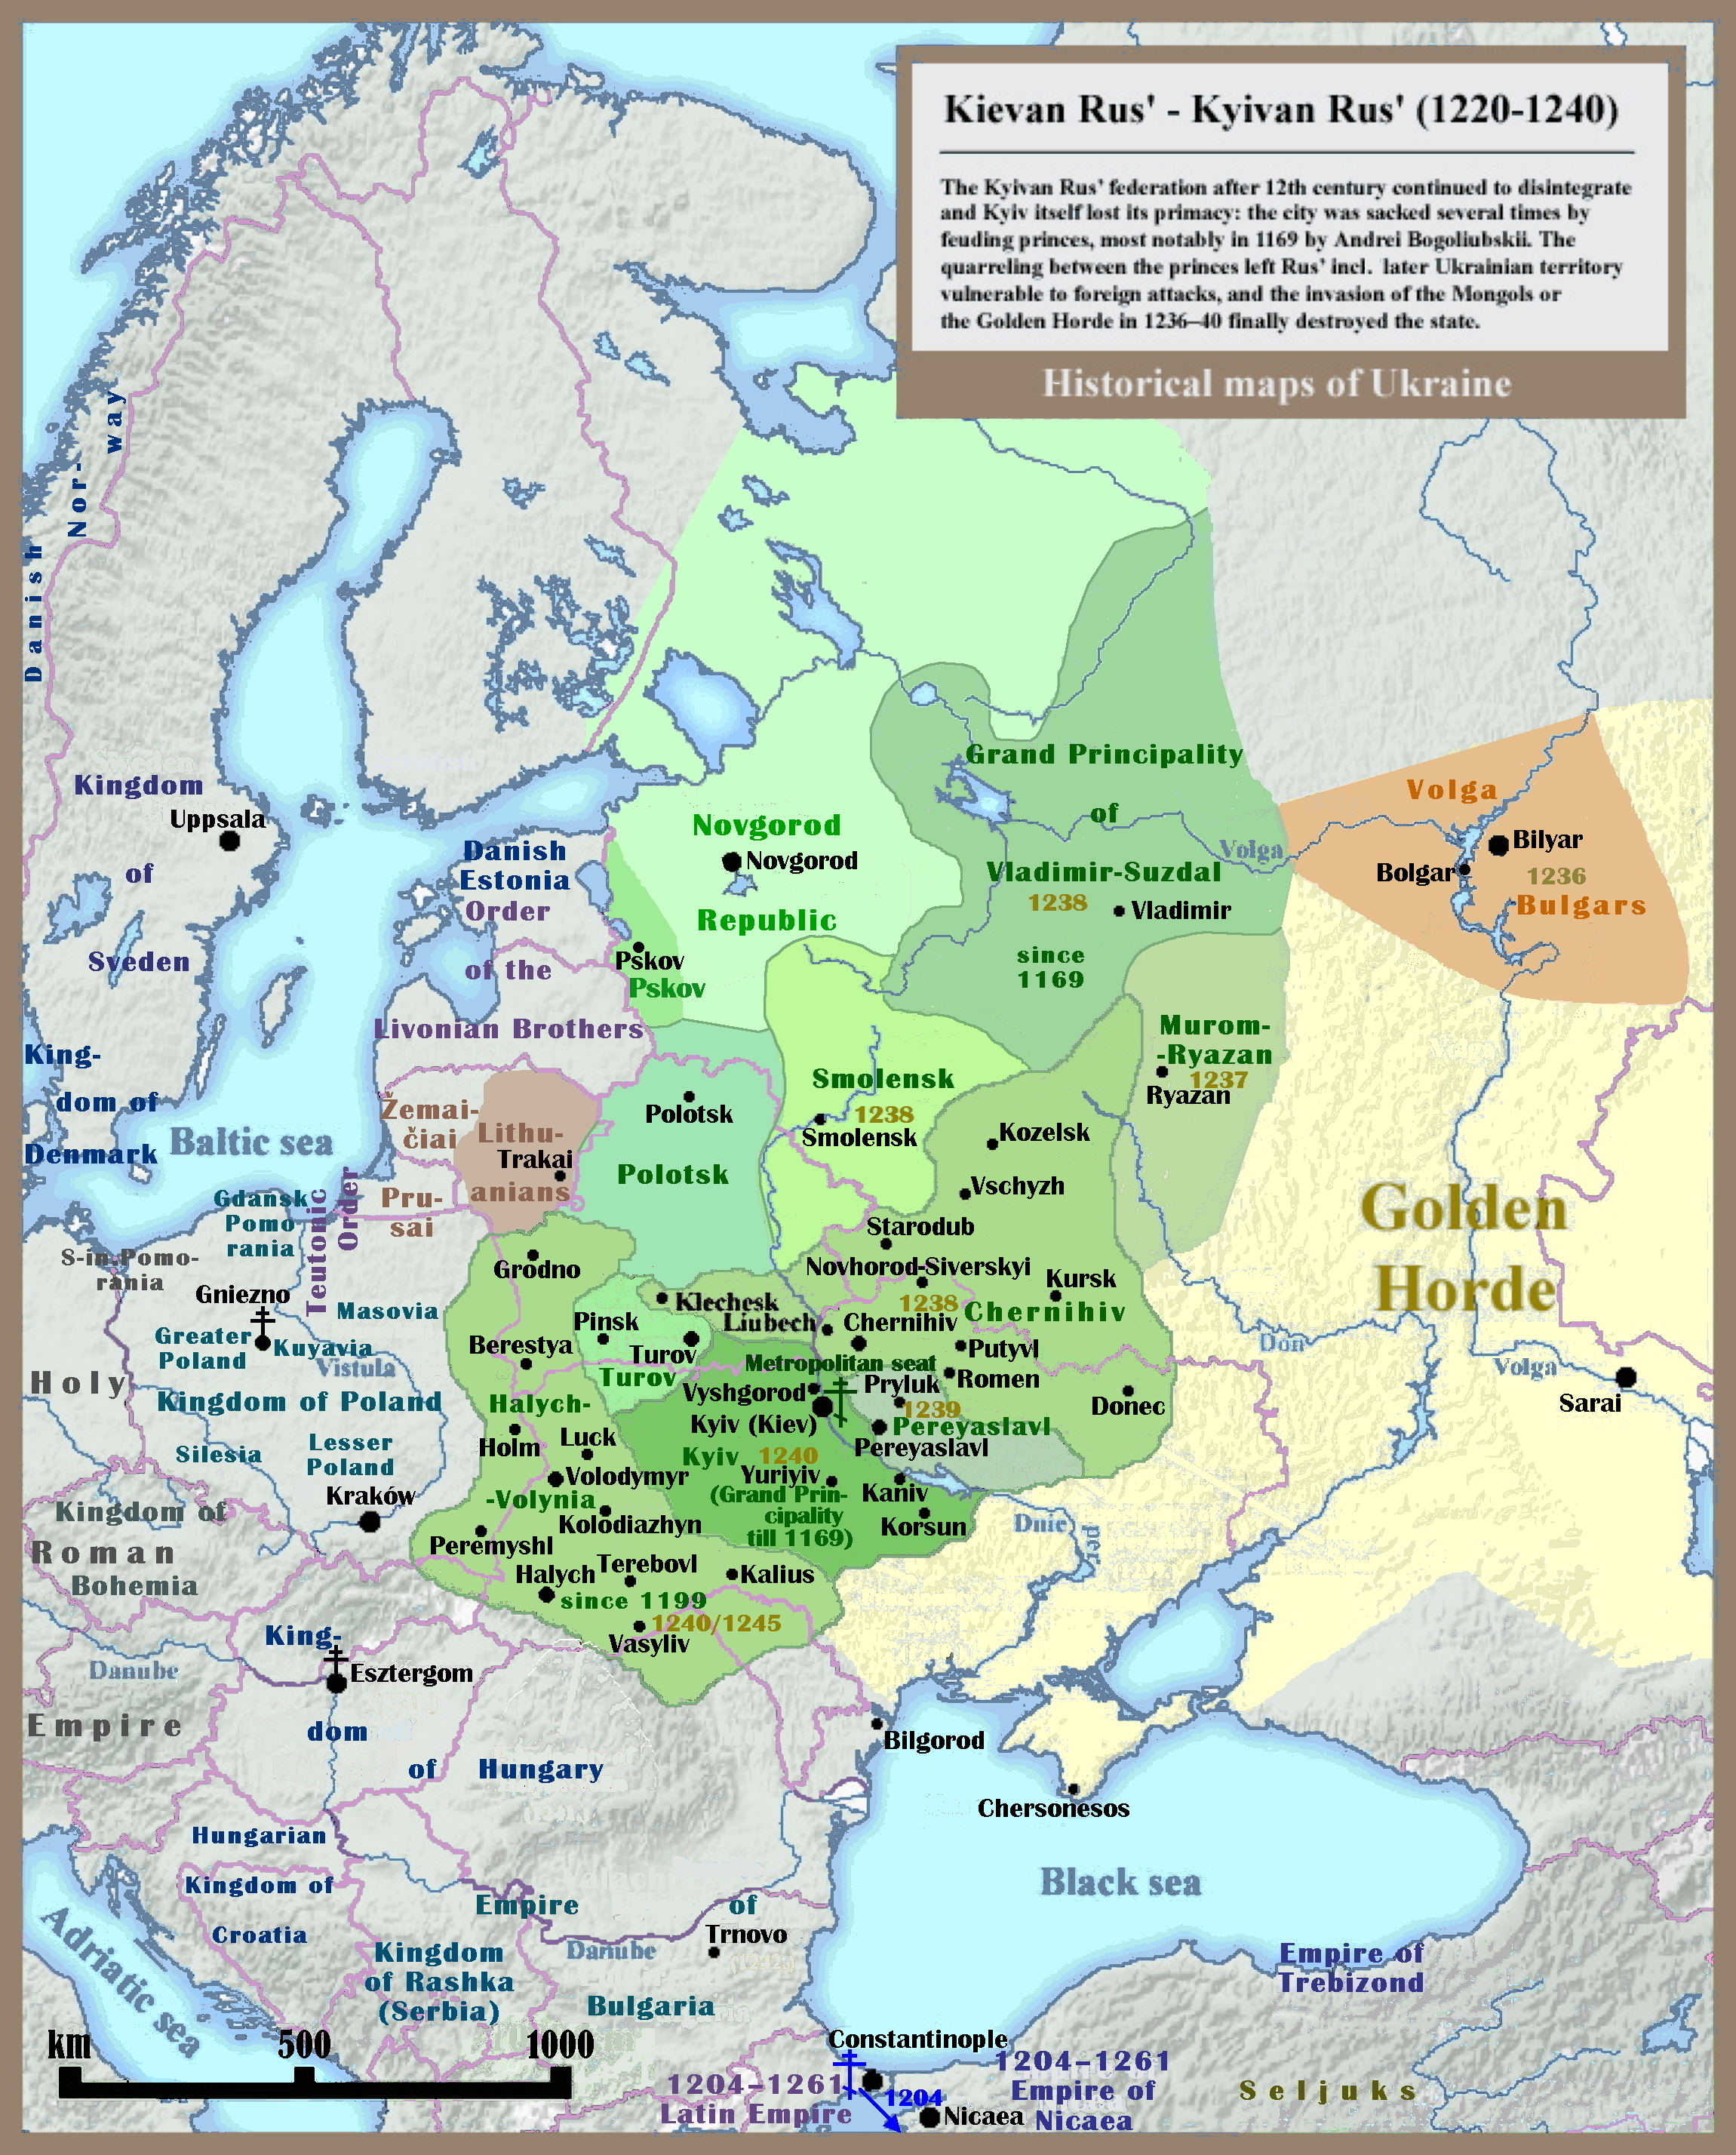 Kievan Rus as a gift to modern Ukrainians from the USSR